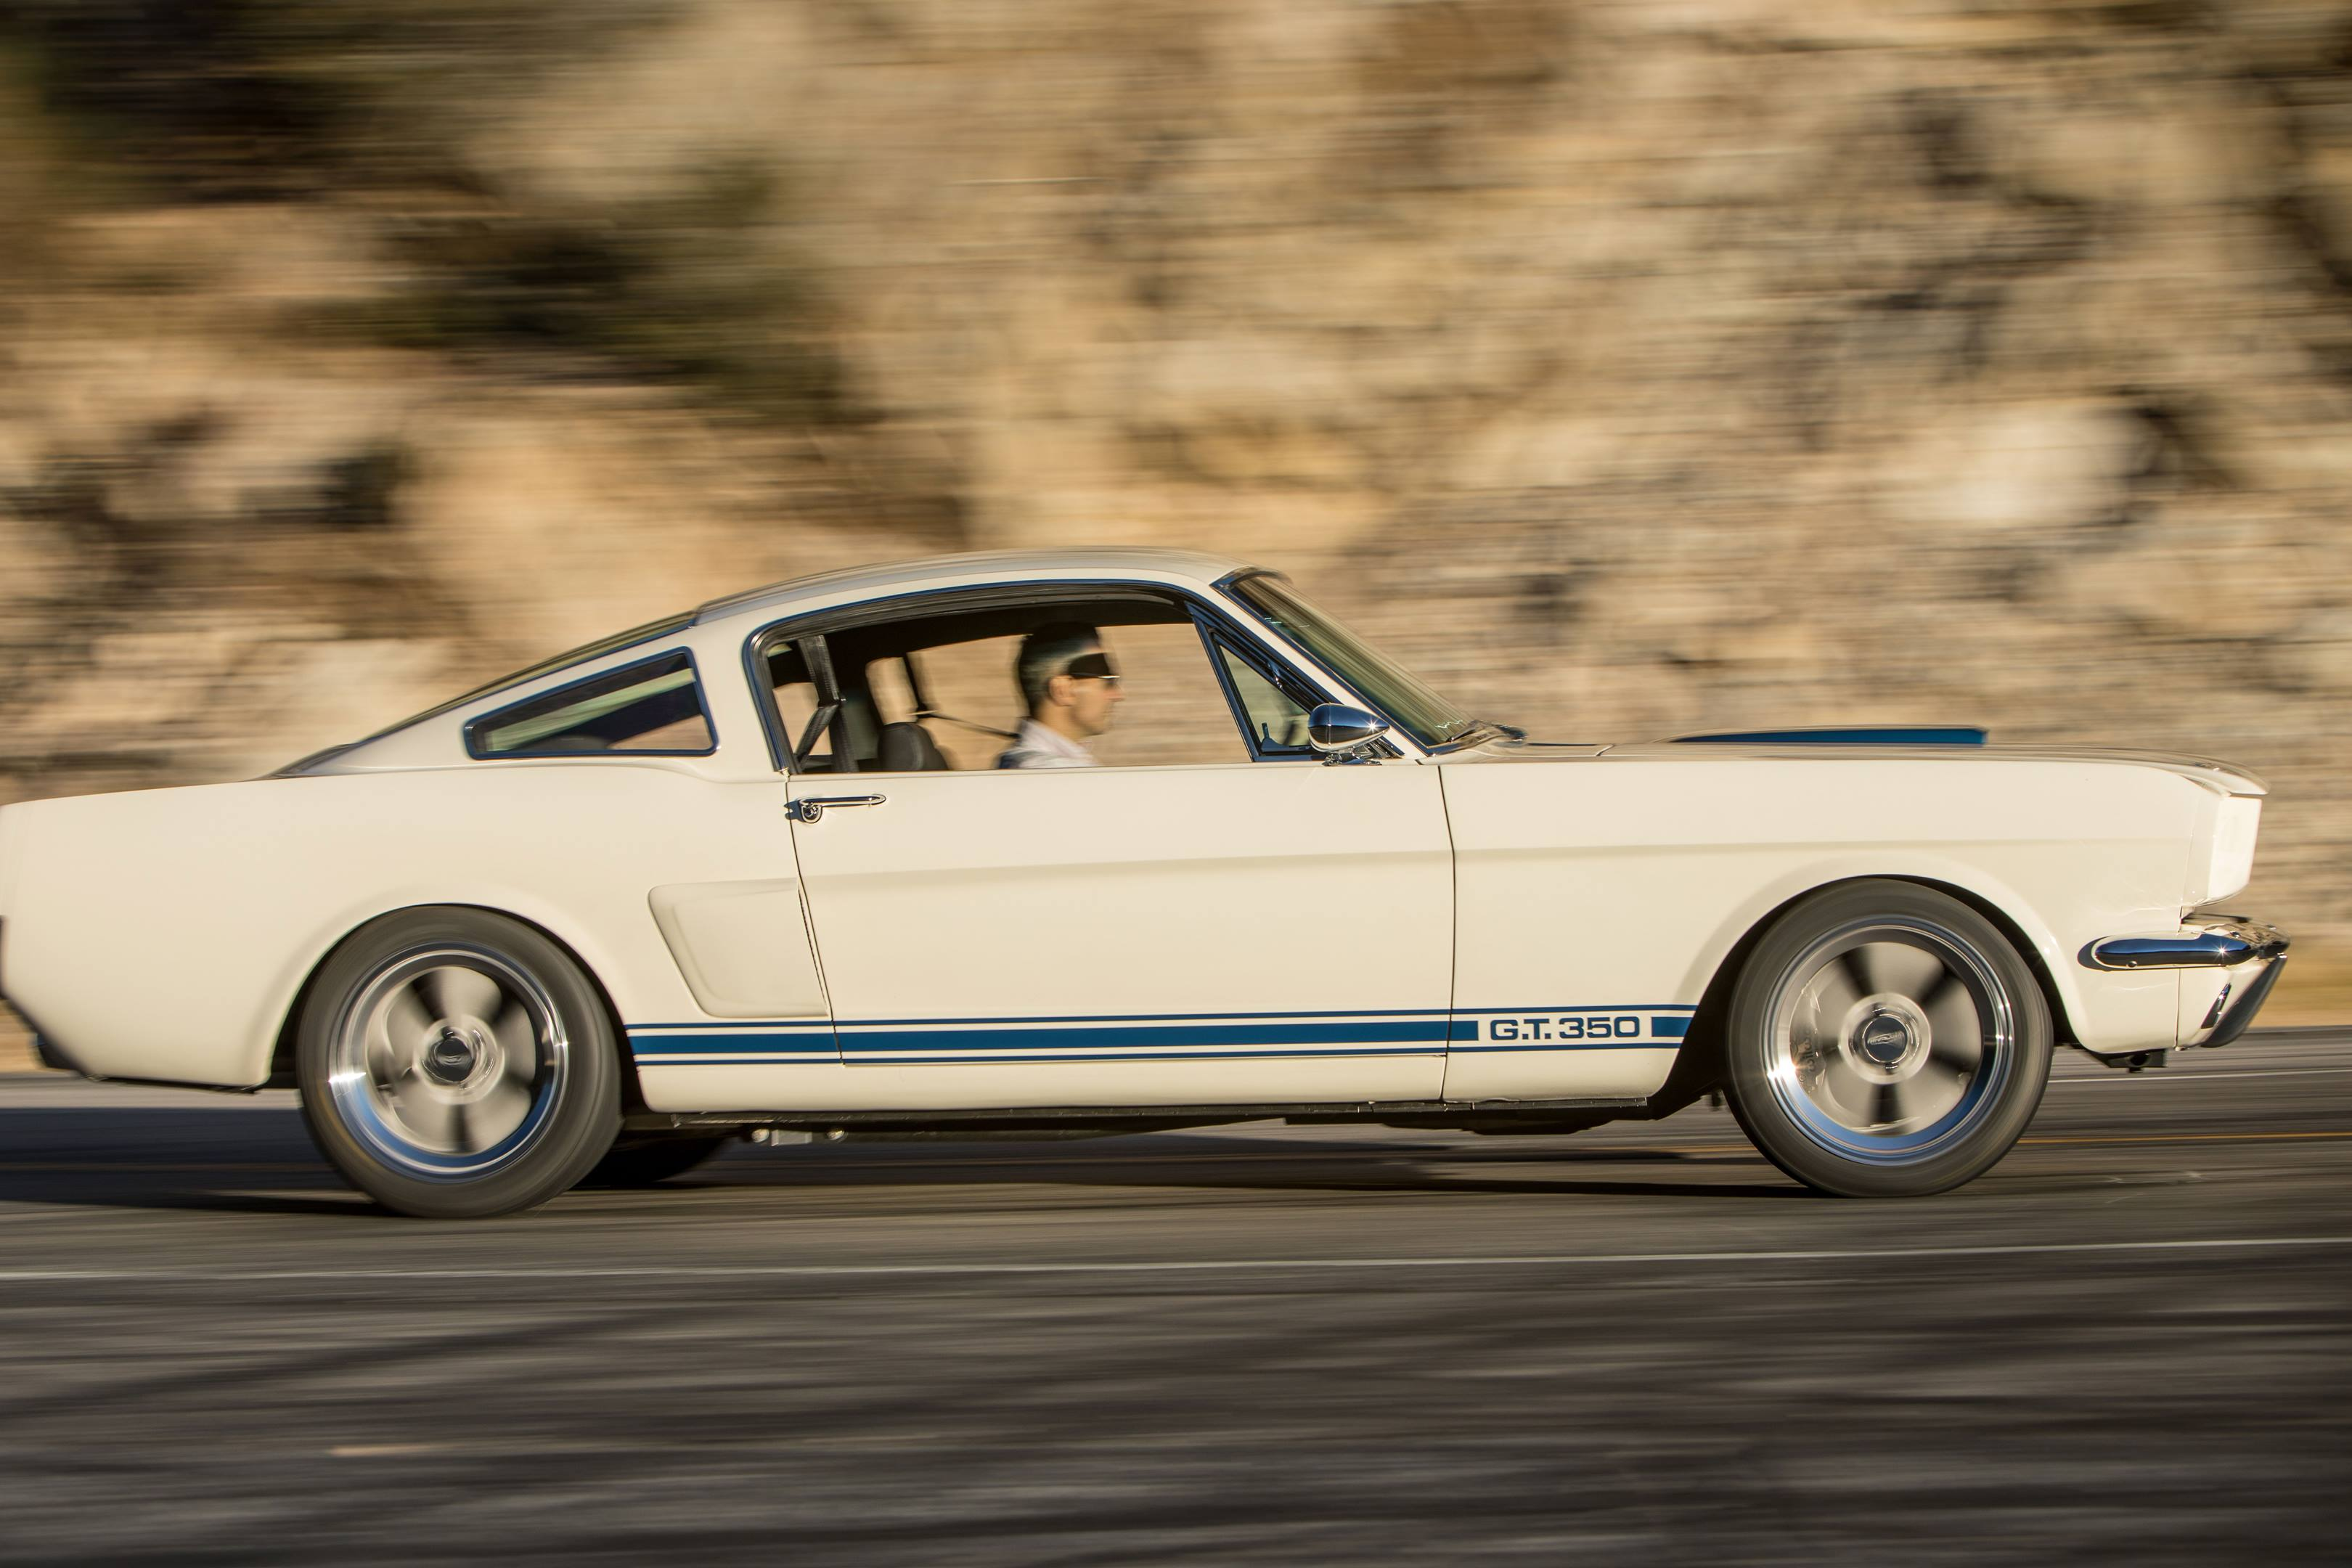 Revology GT350 driving profile